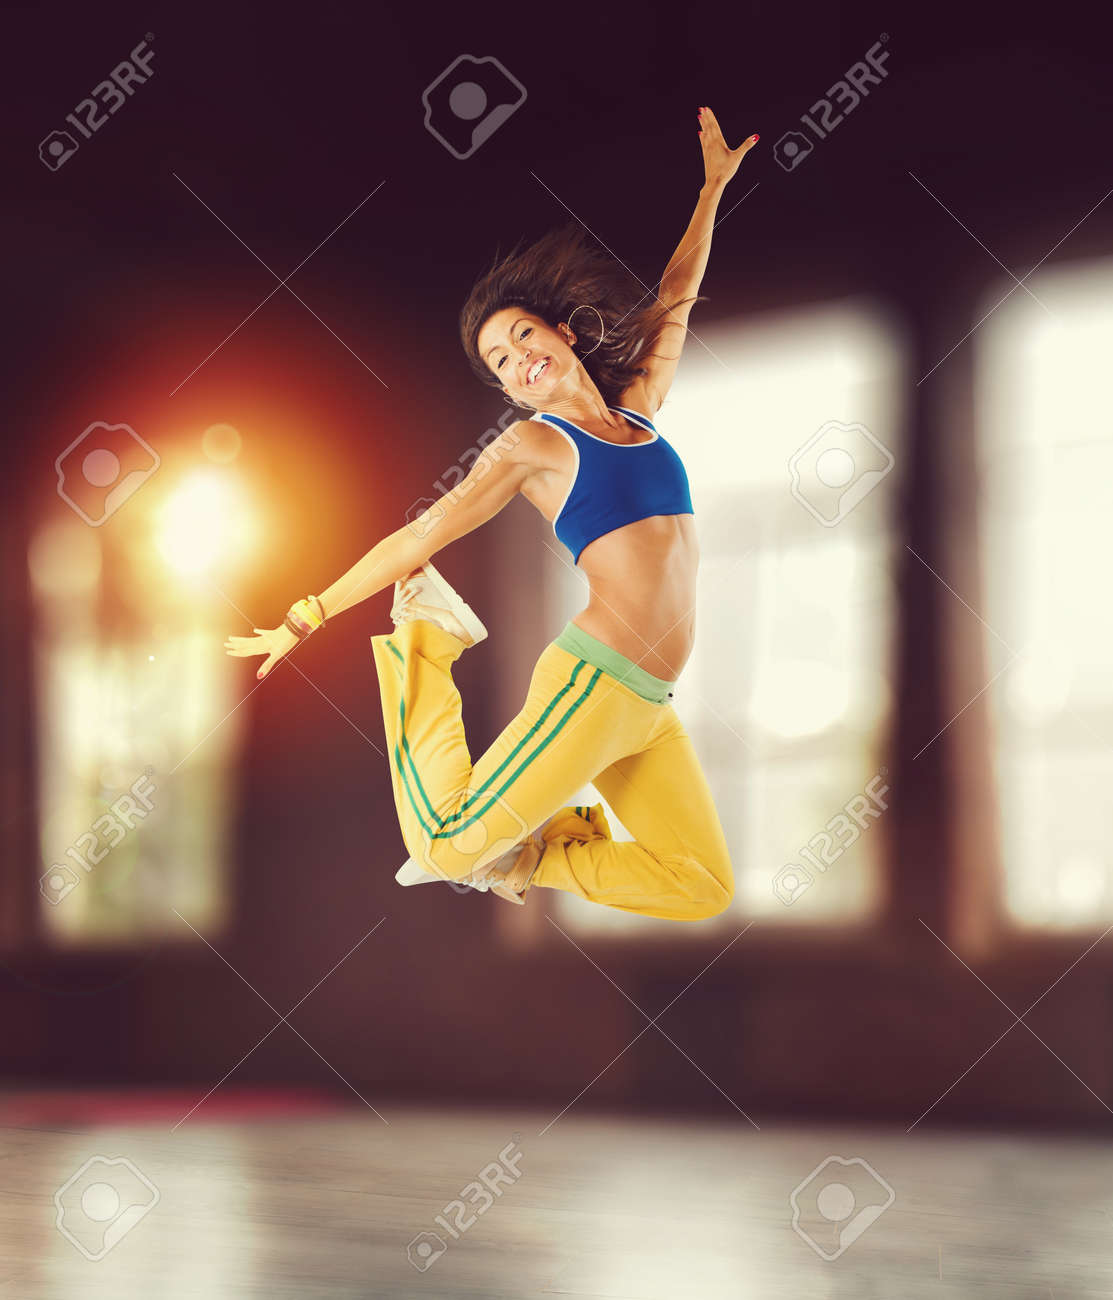 Happy girl has fun during the workout - 94753250